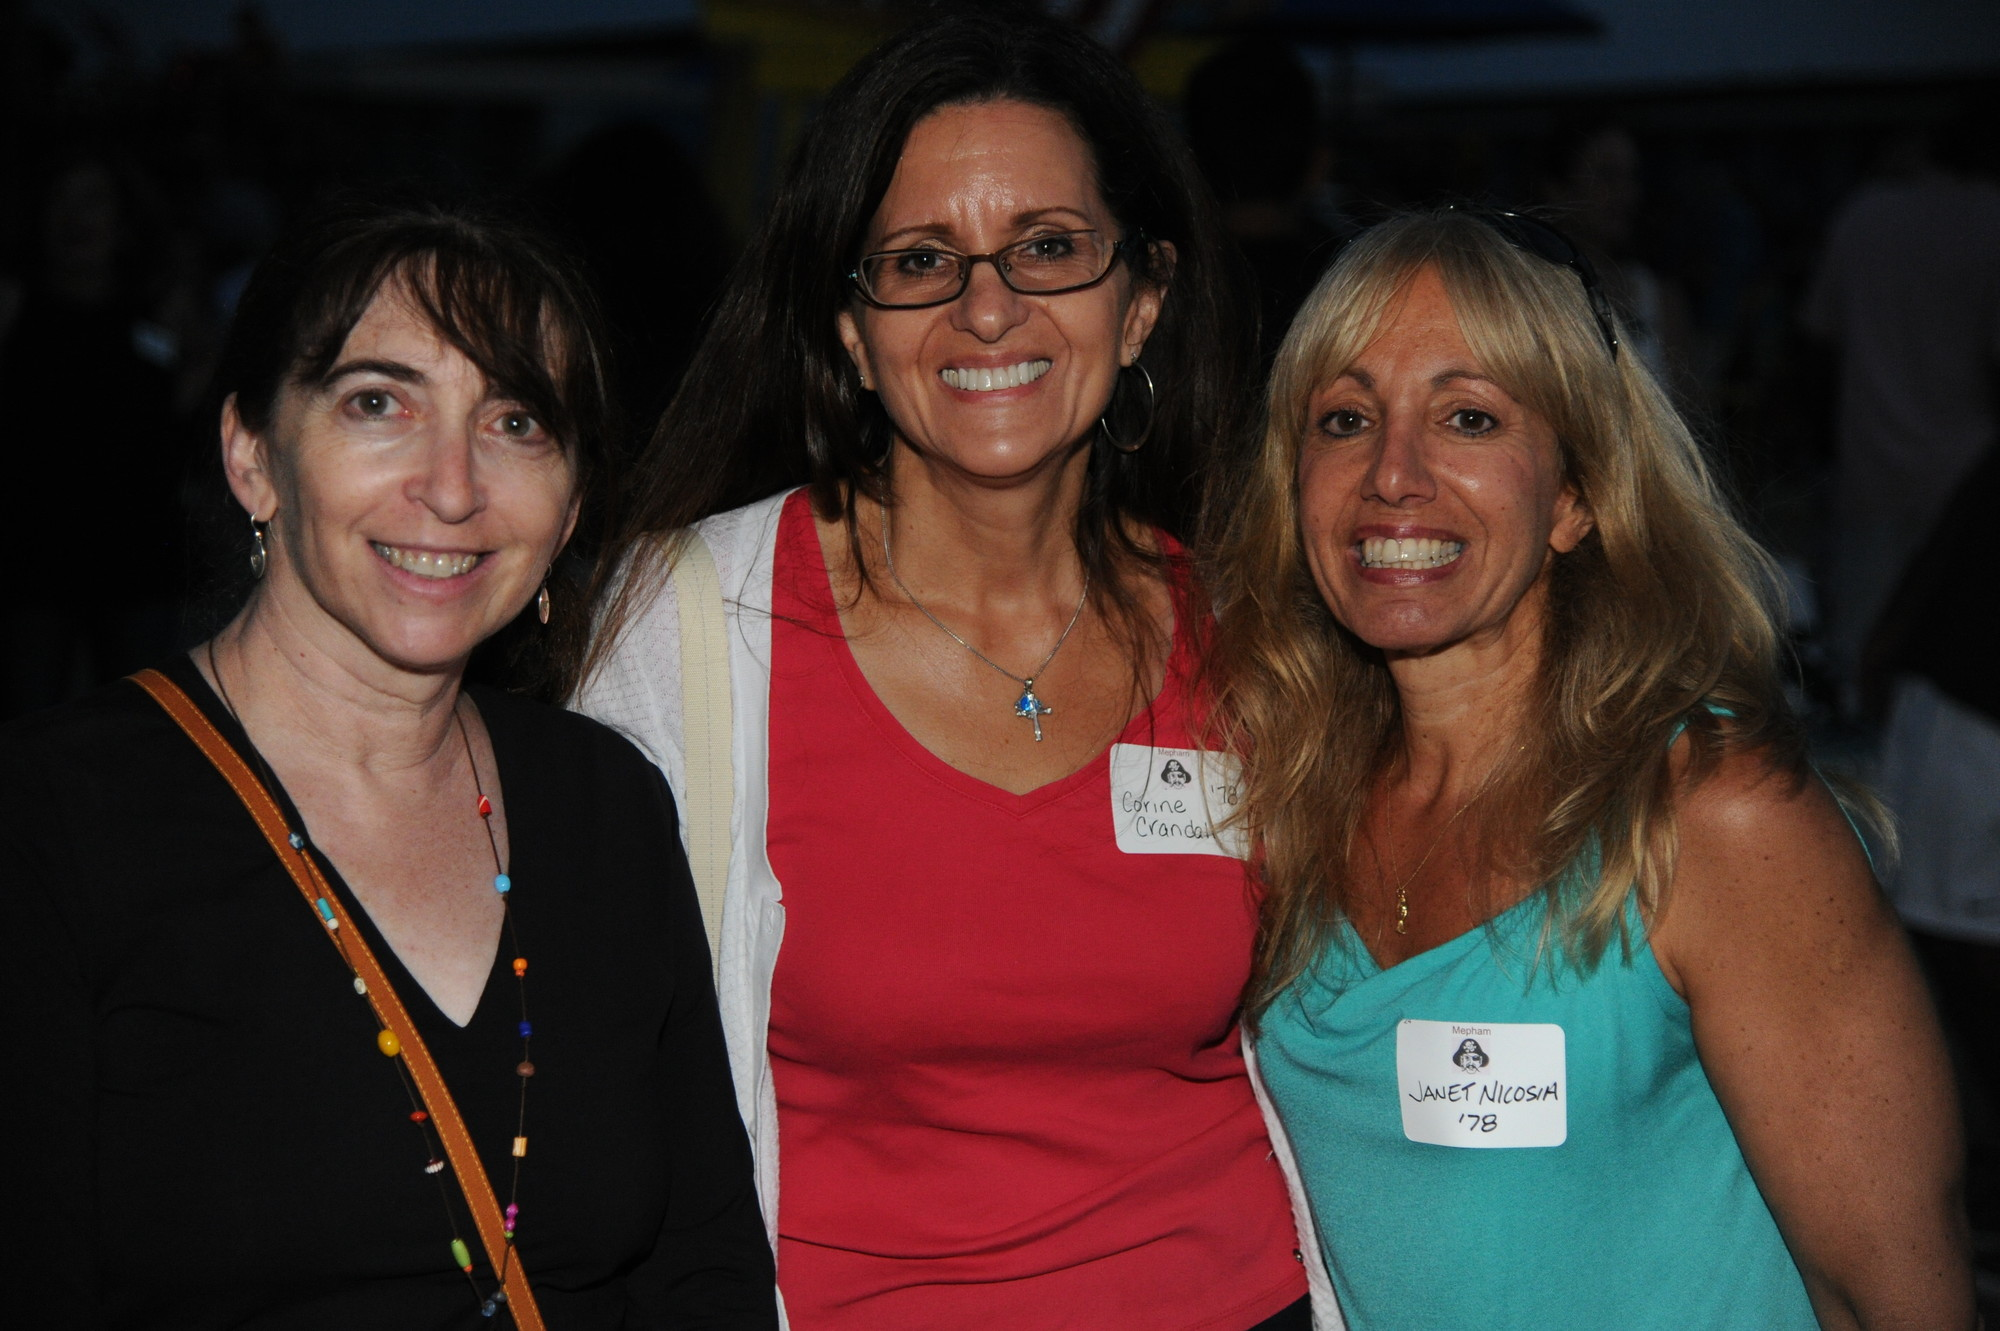 Mindy Passin, Corine Crandall and Janet Nicosia, all of whom graduated from Mepham High School in 1978, showed their Pirate pride at the reunion.